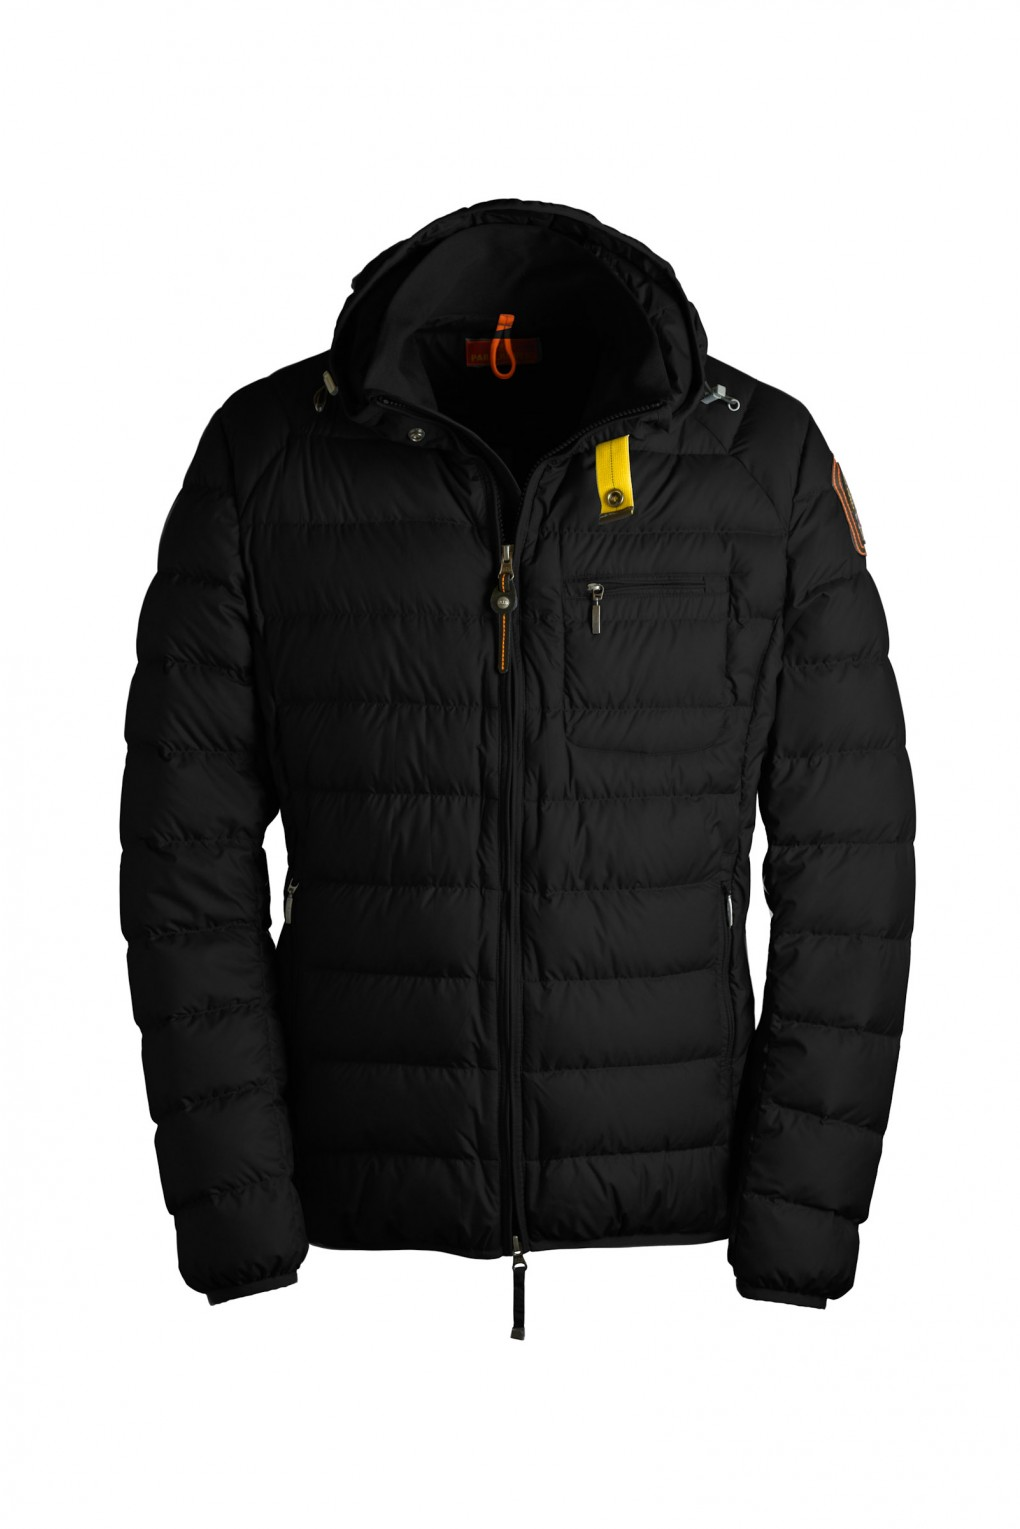 parajumpers LAST MINUTE man outerwear Black